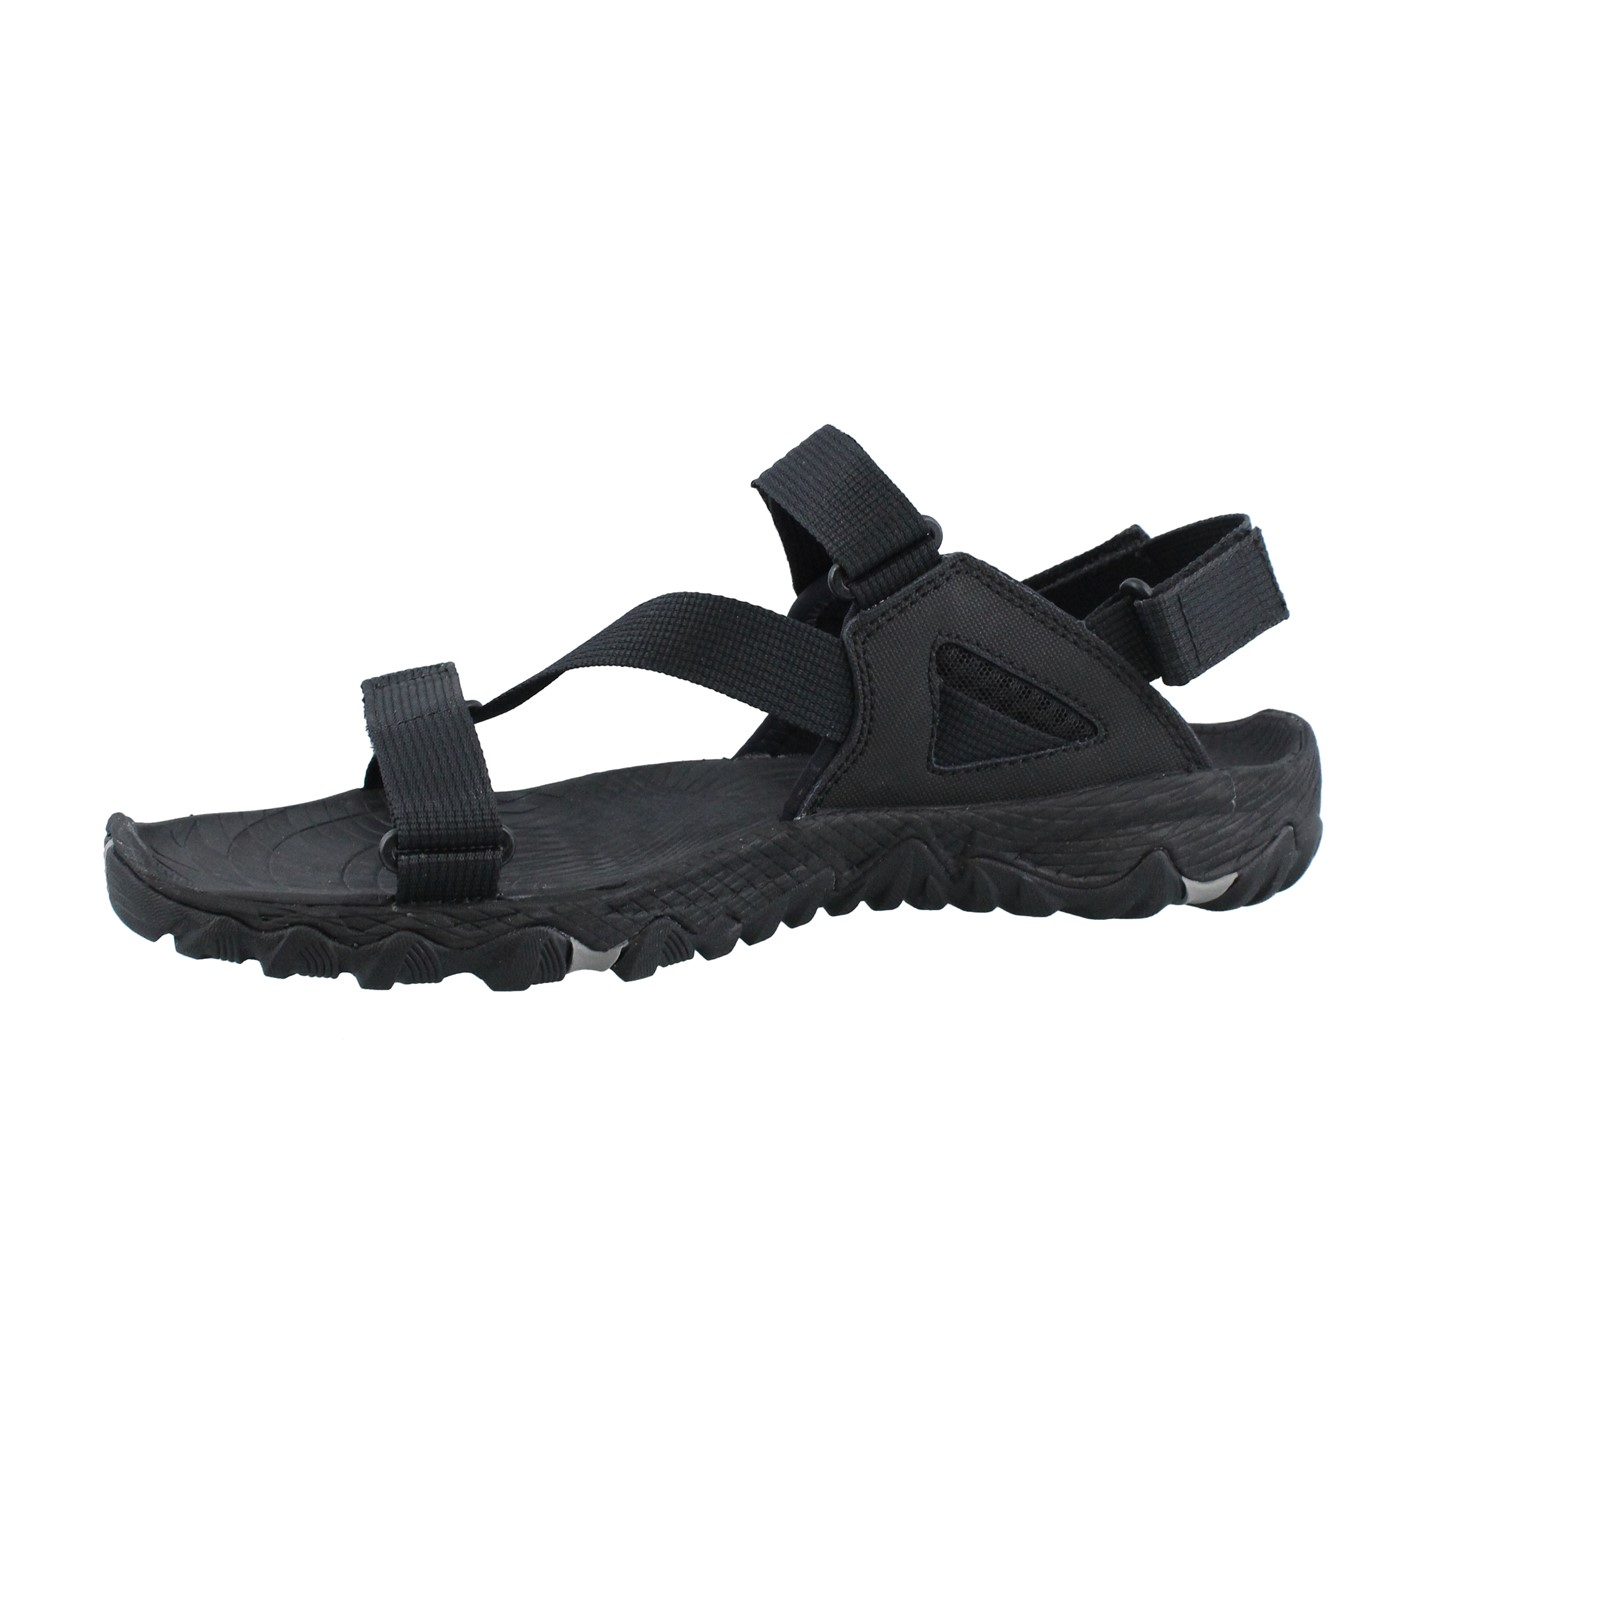 017fa5f6da0 Next. add to favorites. Men s Merrell